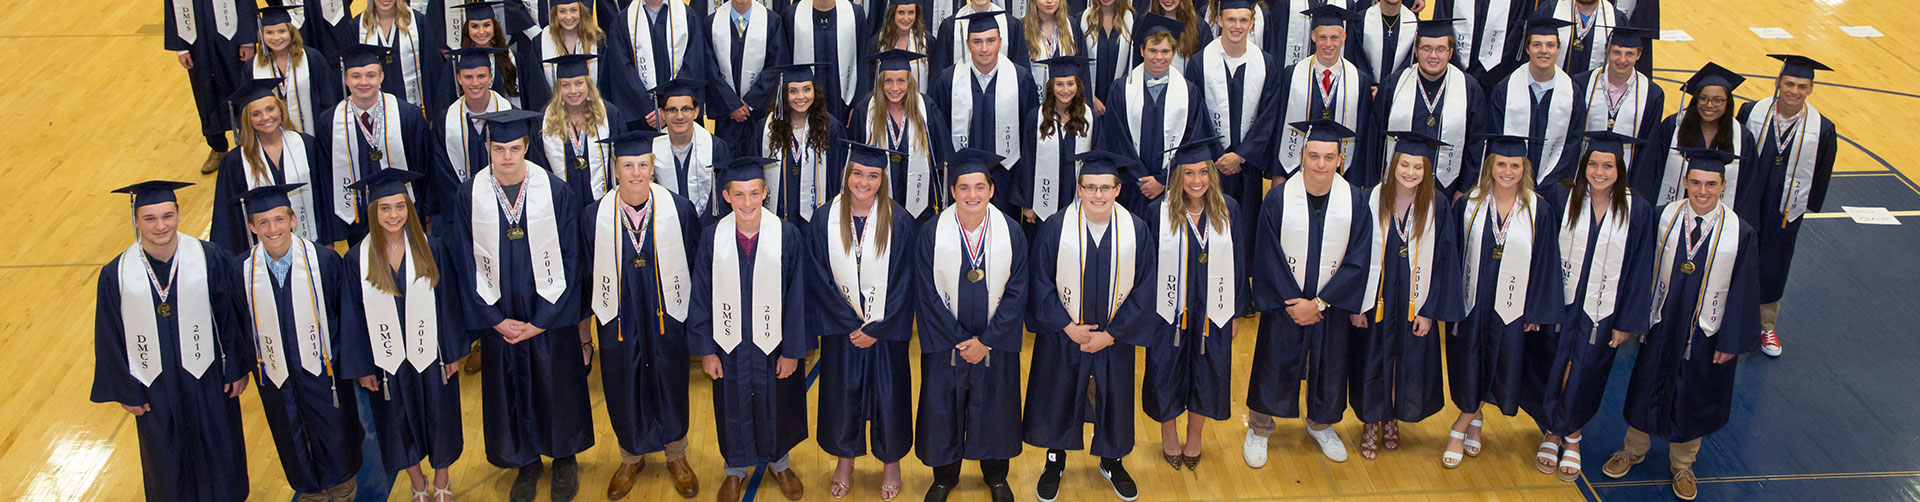 Des Moines Christian School Class of 2019